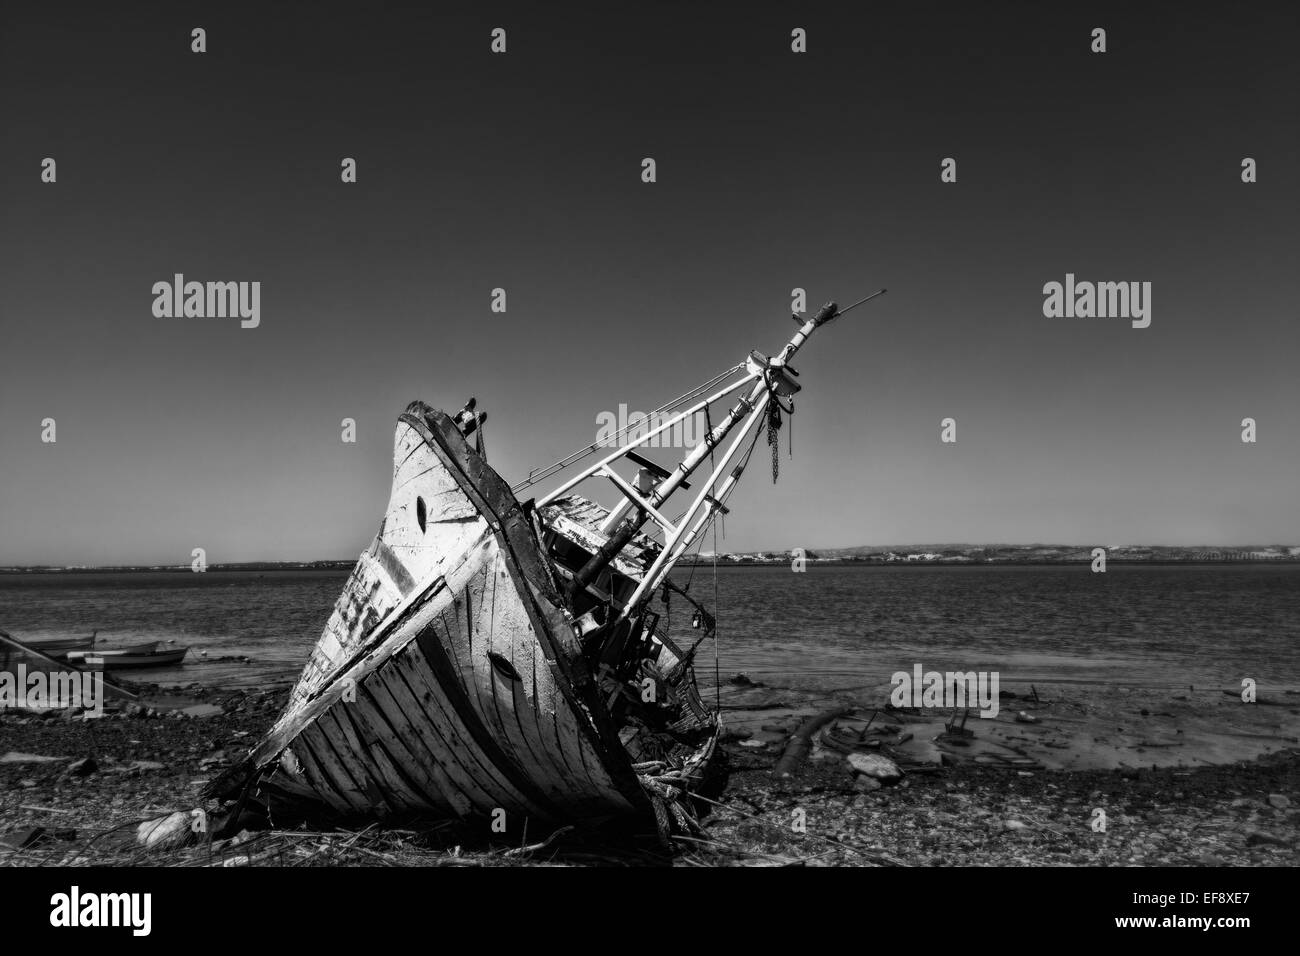 Beyond the need for repair, and old fishing boat sits broken, no longer used for fishing or tourist visits. - Stock Image